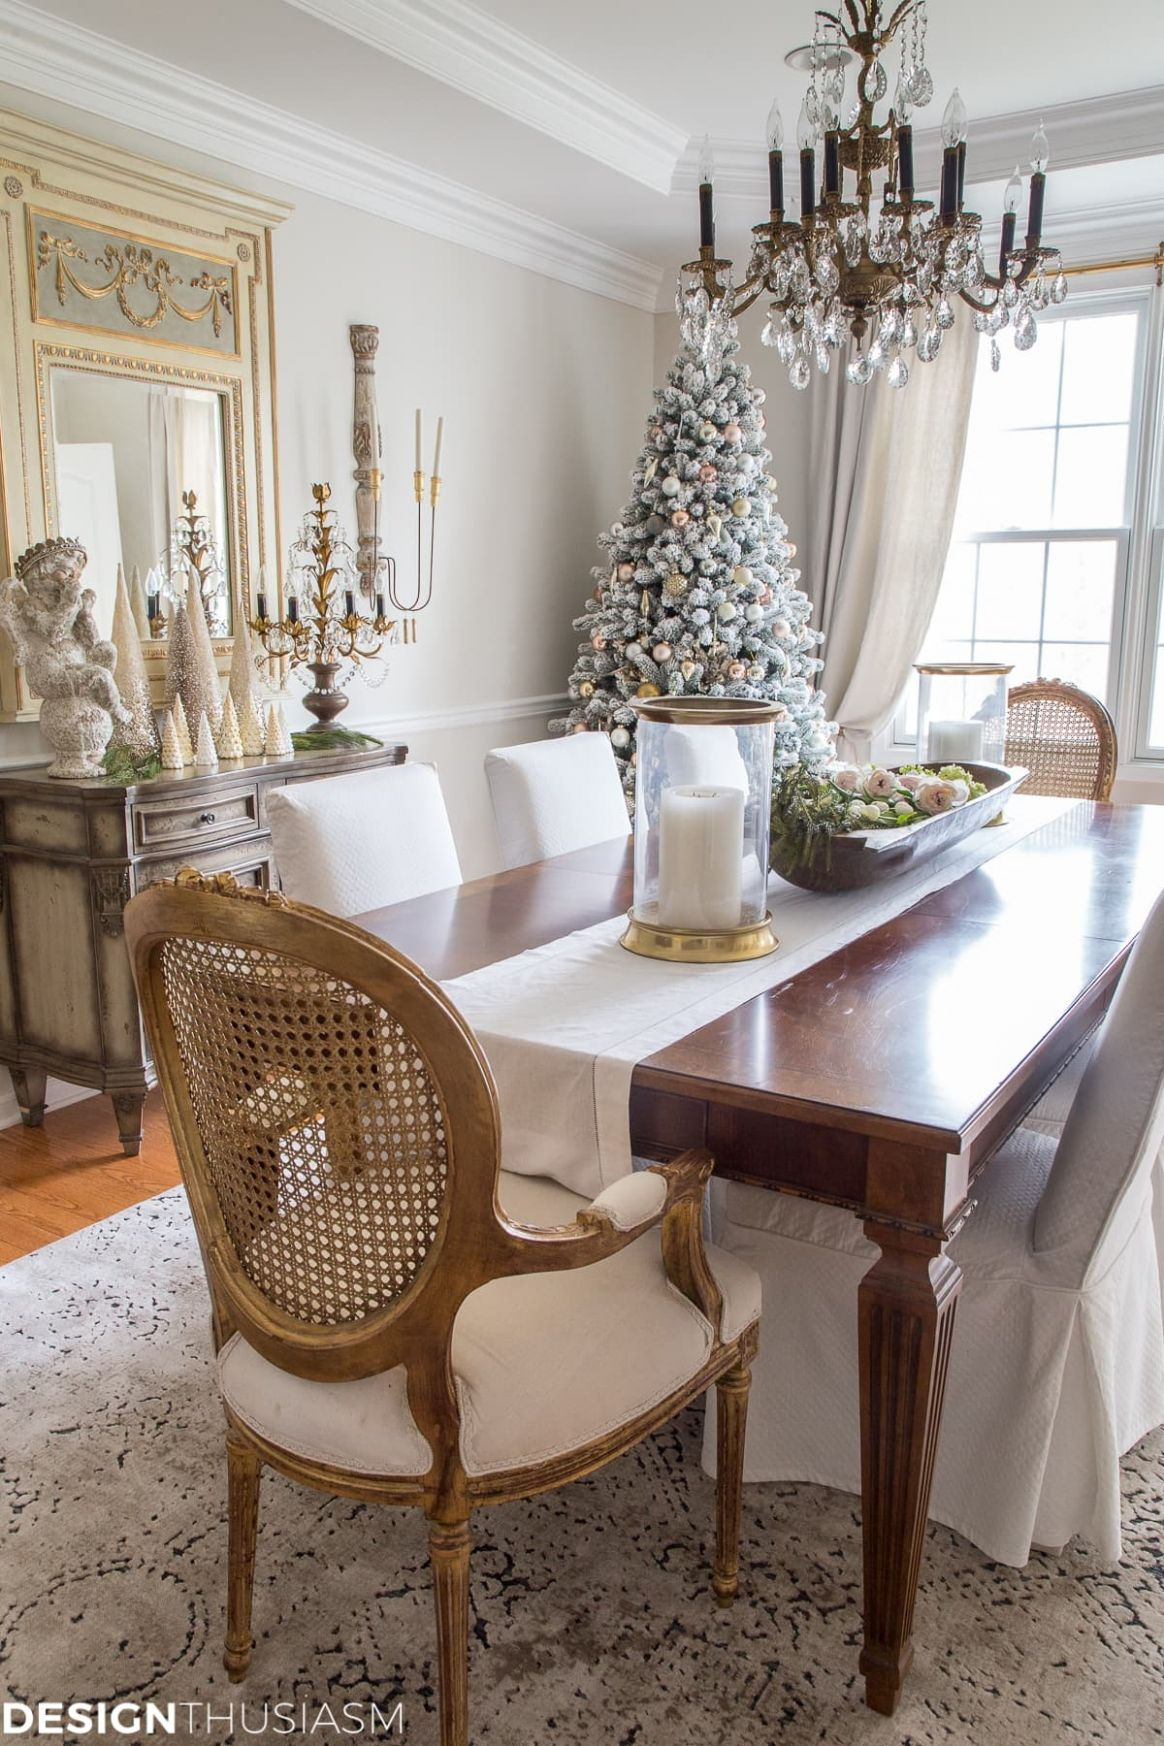 Elegant Holiday Decorating Ideas Dining Room – Saltandblues - dining room ideas country style